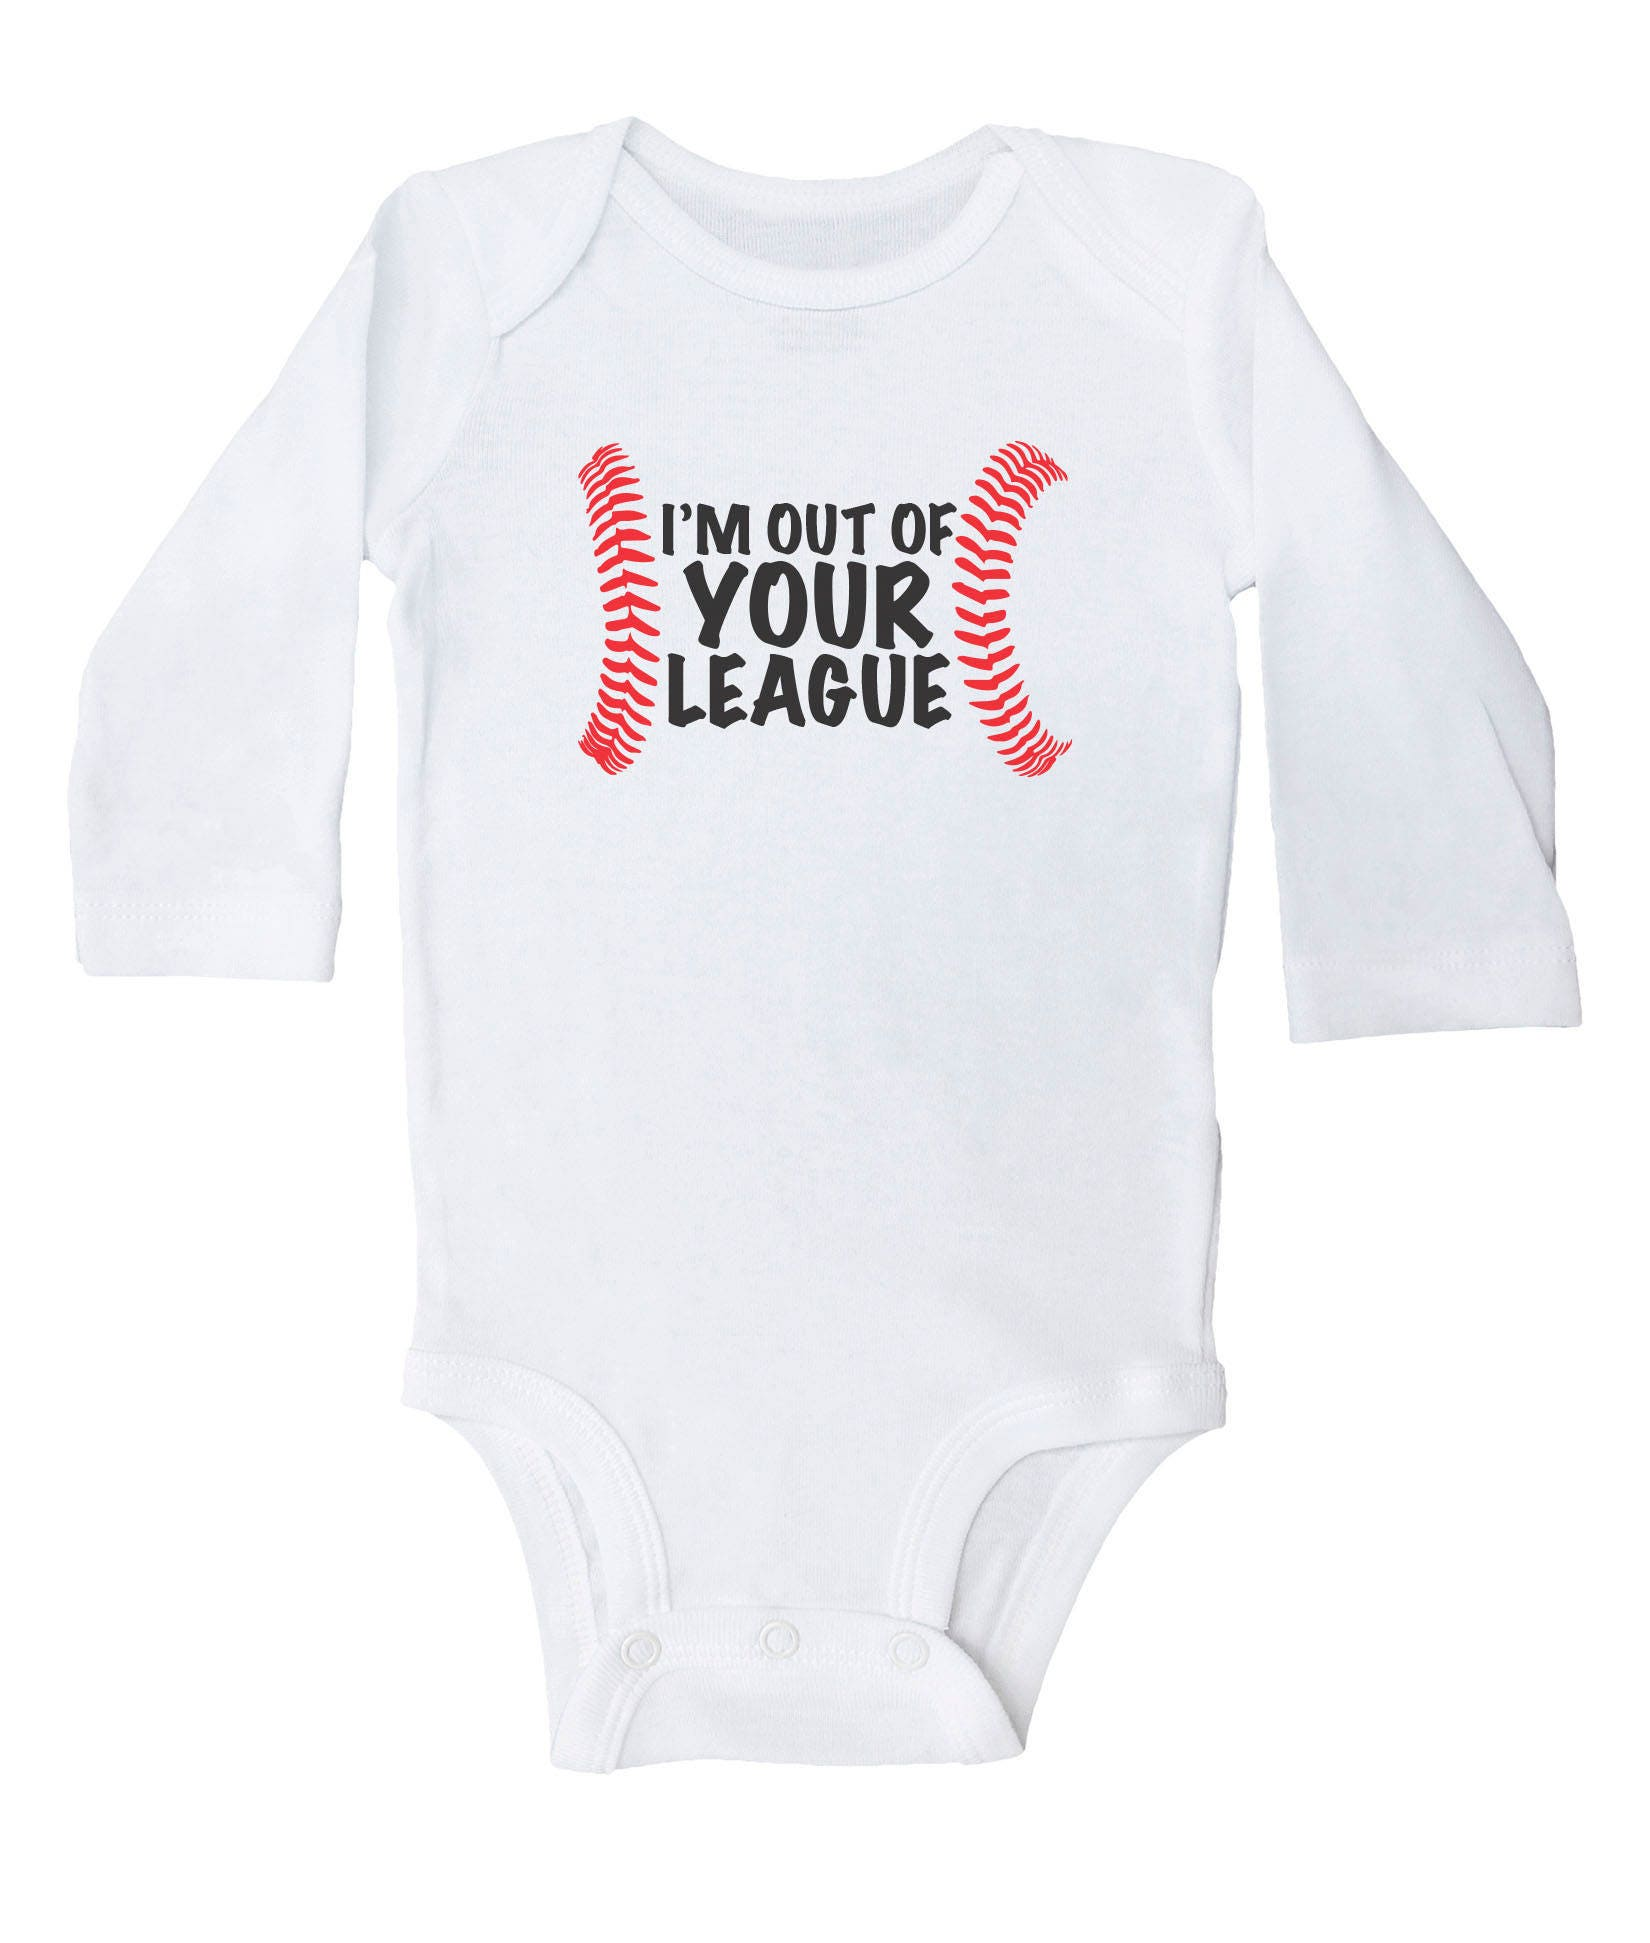 I m Out Your League Funny Baseball Bodysuit for Kids Cute